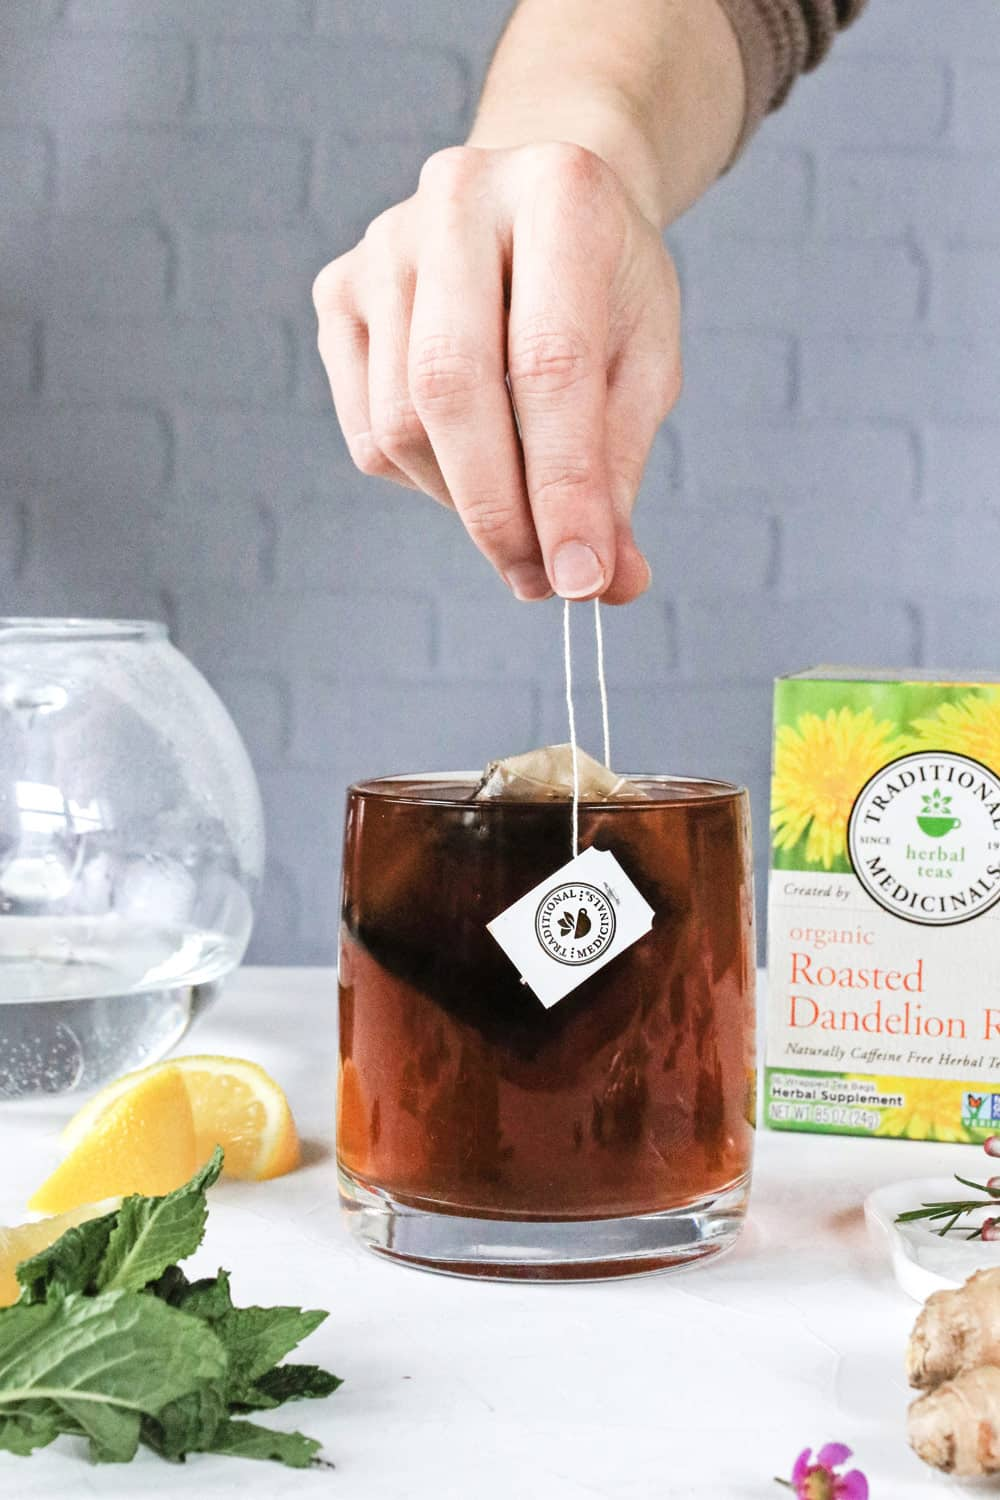 The Best Teas for Digestive Support and Detox